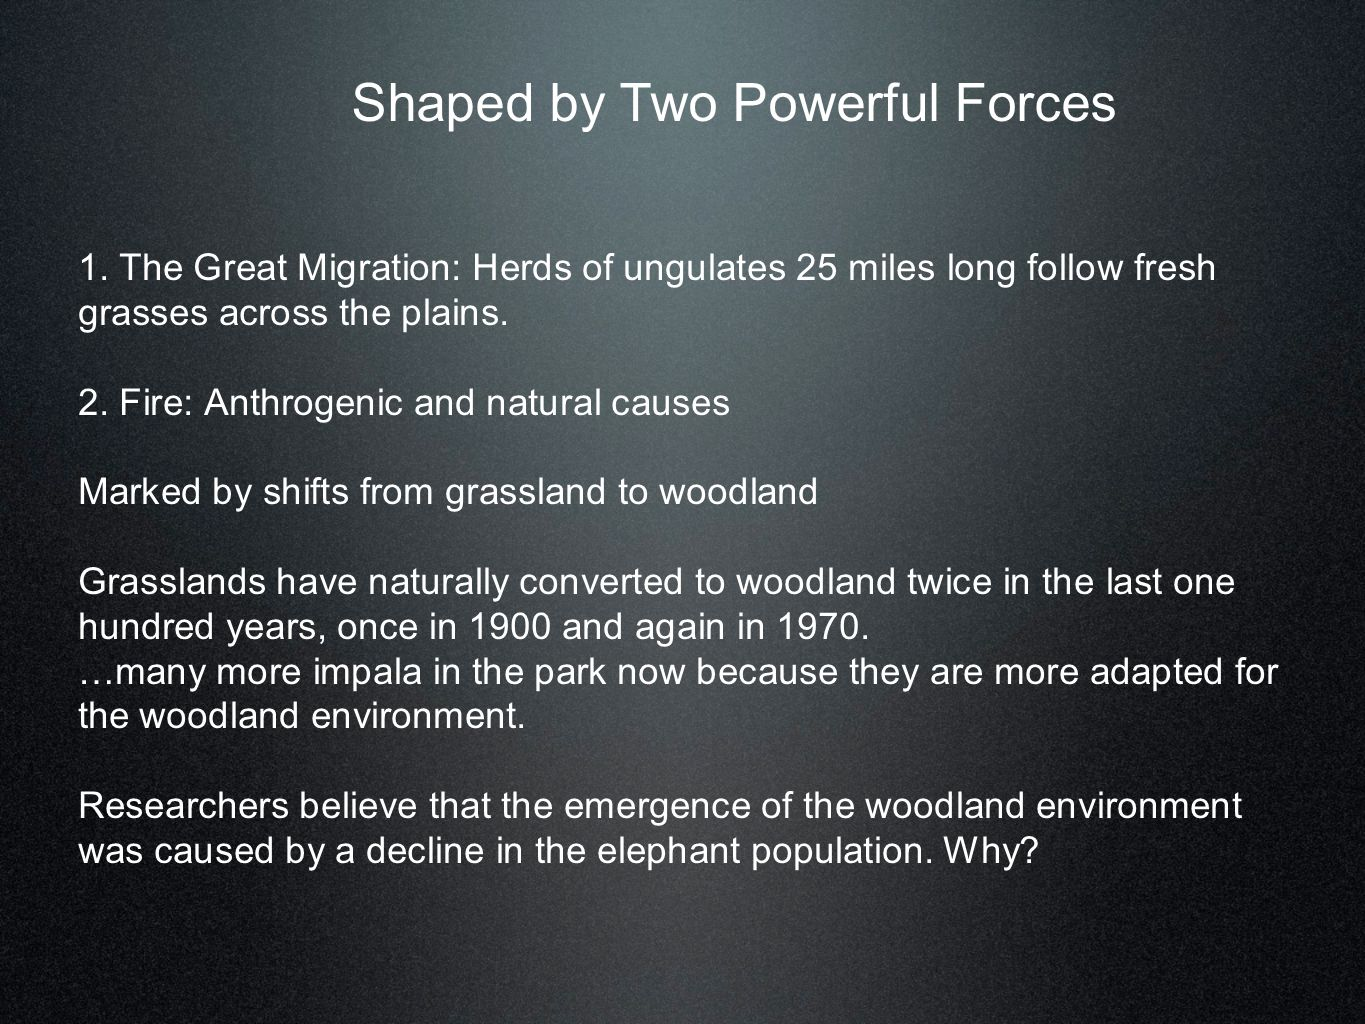 1. The Great Migration: Herds of ungulates 25 miles long follow fresh grasses across the plains. 2. Fire: Anthrogenic and natural causes Marked by shi